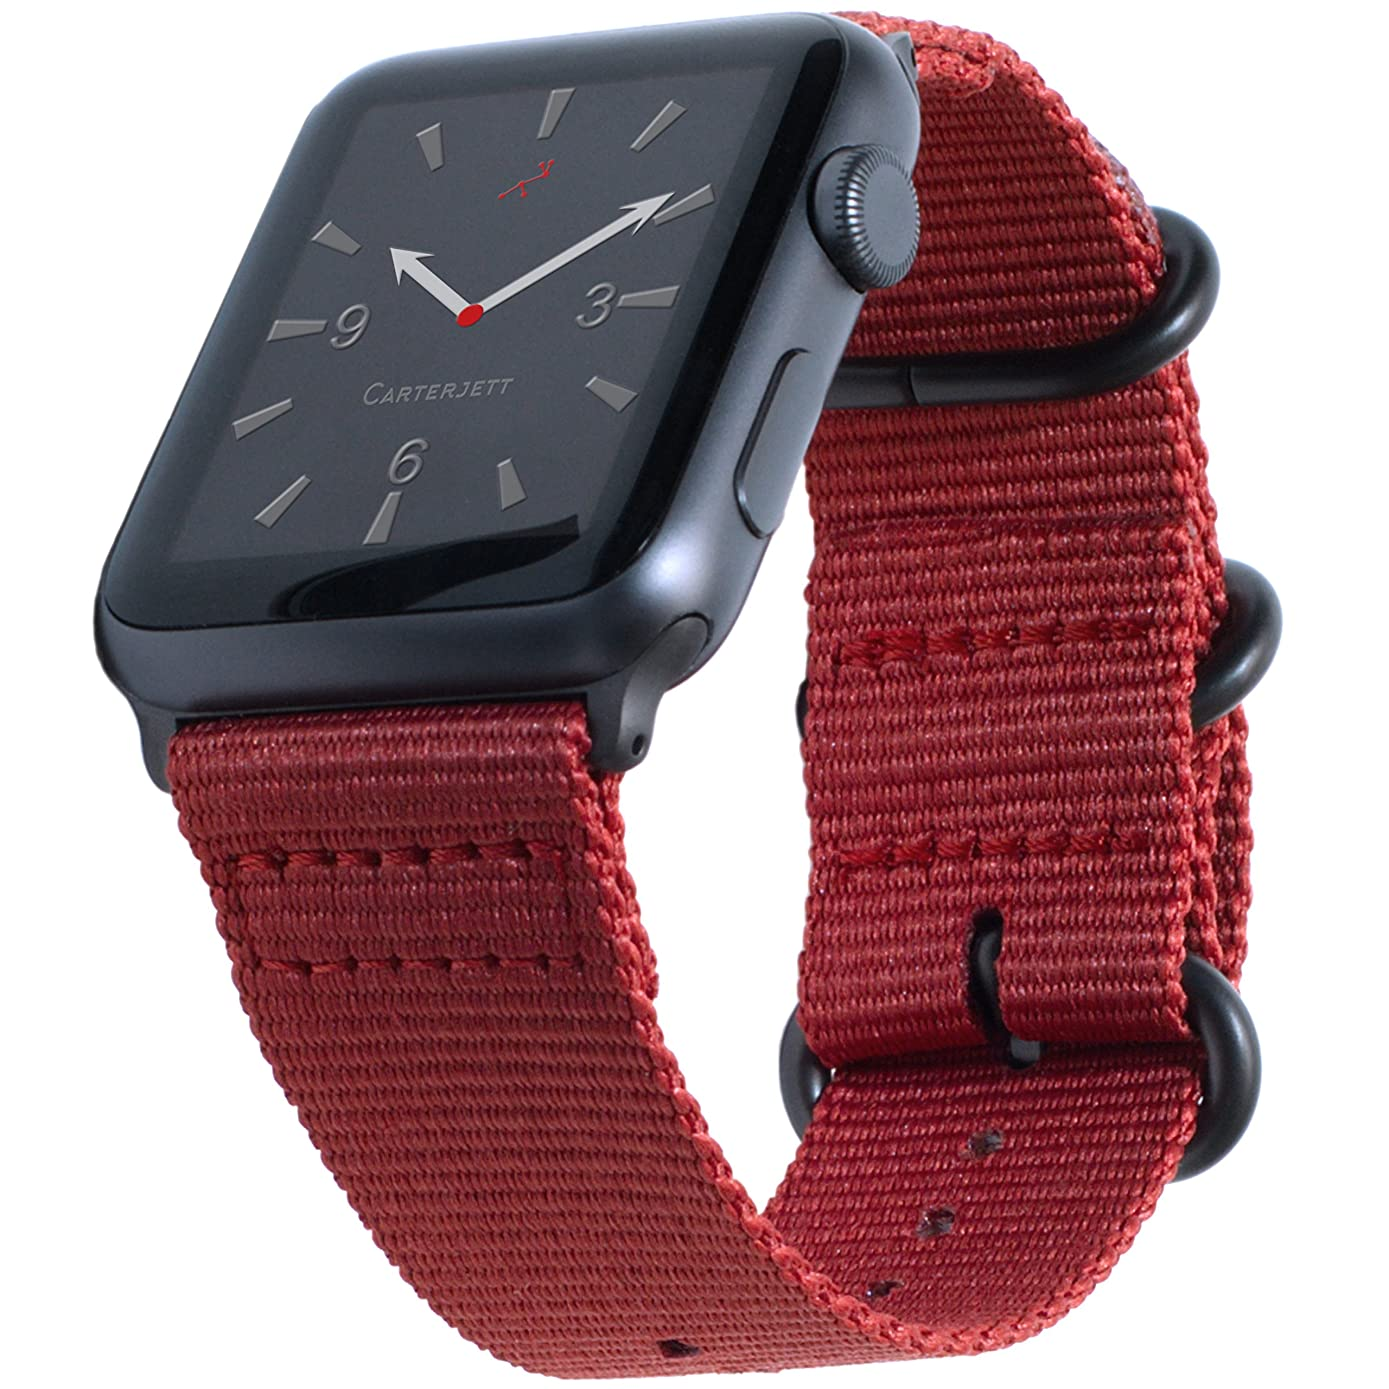 Carterjett Compatible Apple Watch Band Red 42mm 44mm Woven Nylon NATO Replacement iWatch Band Canvas Strap Gray Steel Clasp Adapters Compatible Apple Watch Series 1 2 3 Series 4 (42 44 S/M/L Red)